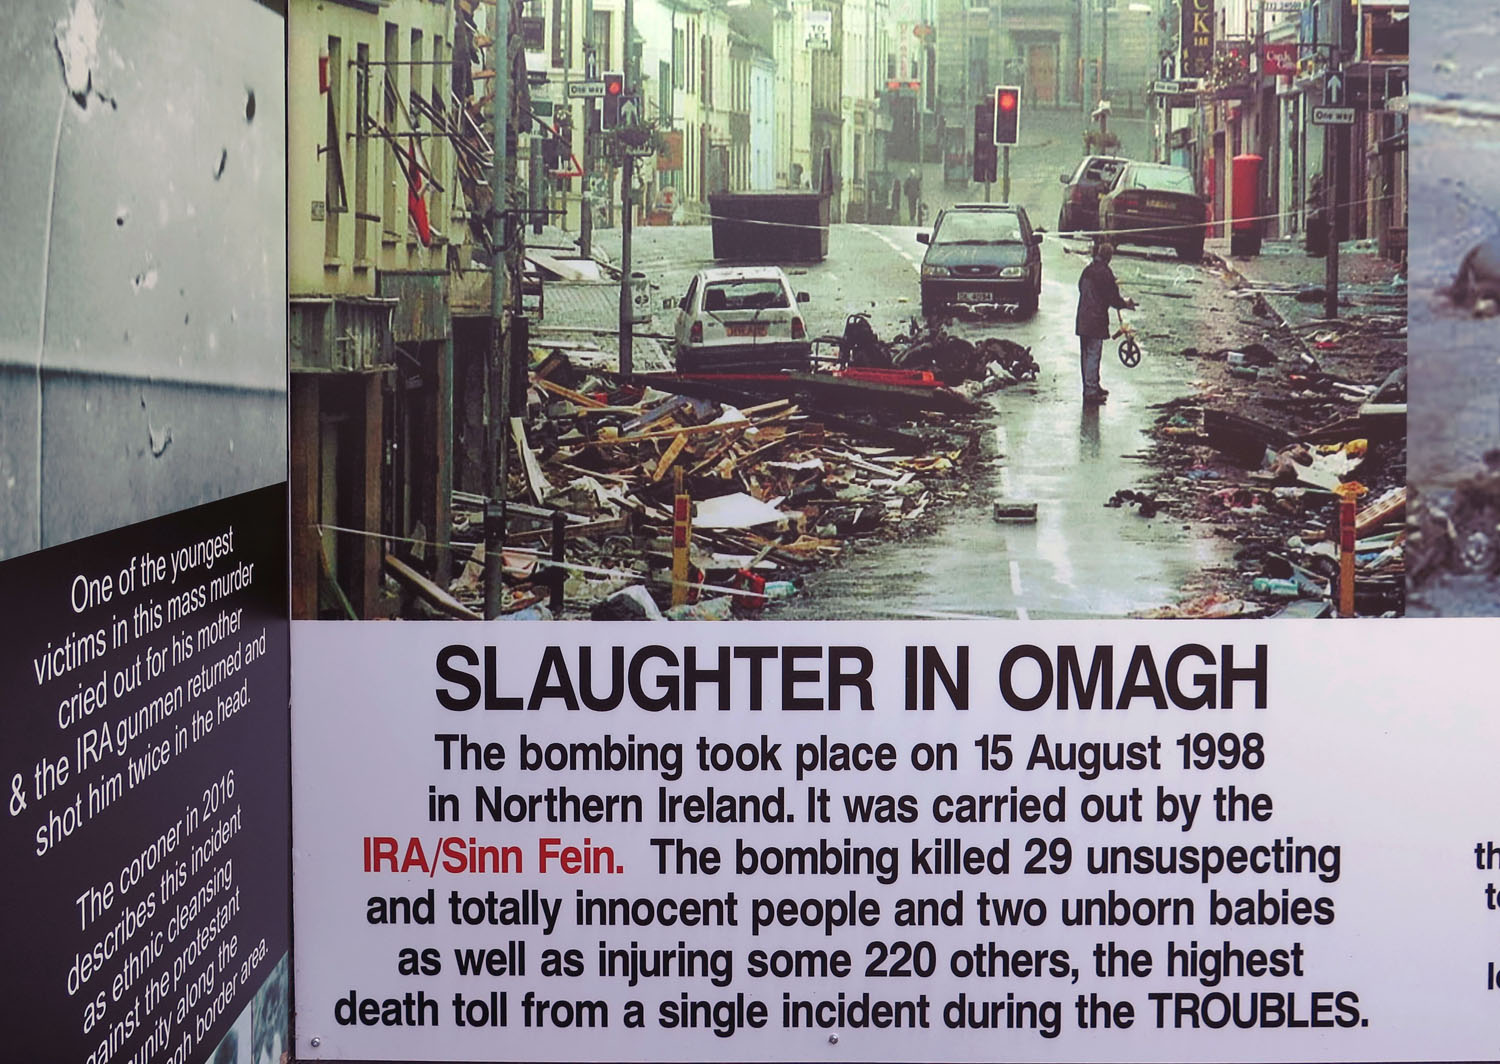 Northern-Ireland-Belfast-The-Troubles-Loyalist-Remembrance-IRA-Bombing-Omagh